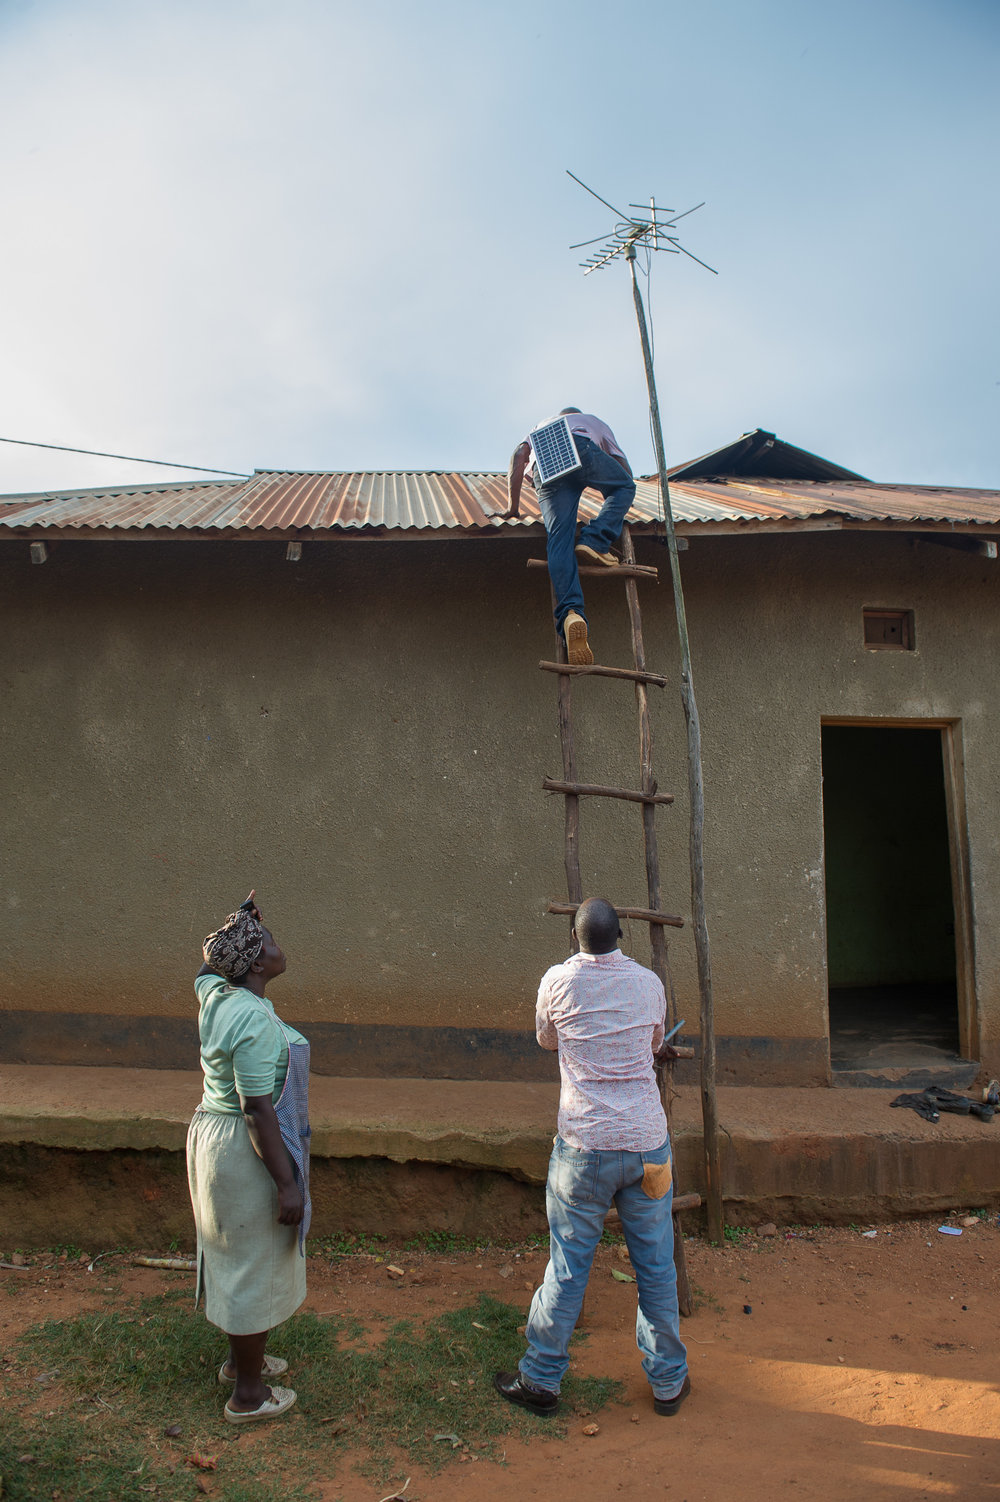 Josephine's house is connected to the grid but the electricity goes out routinely. She's adding a solar panel on the roof to help reduce her bills and keep the lights on even when the main power is out.